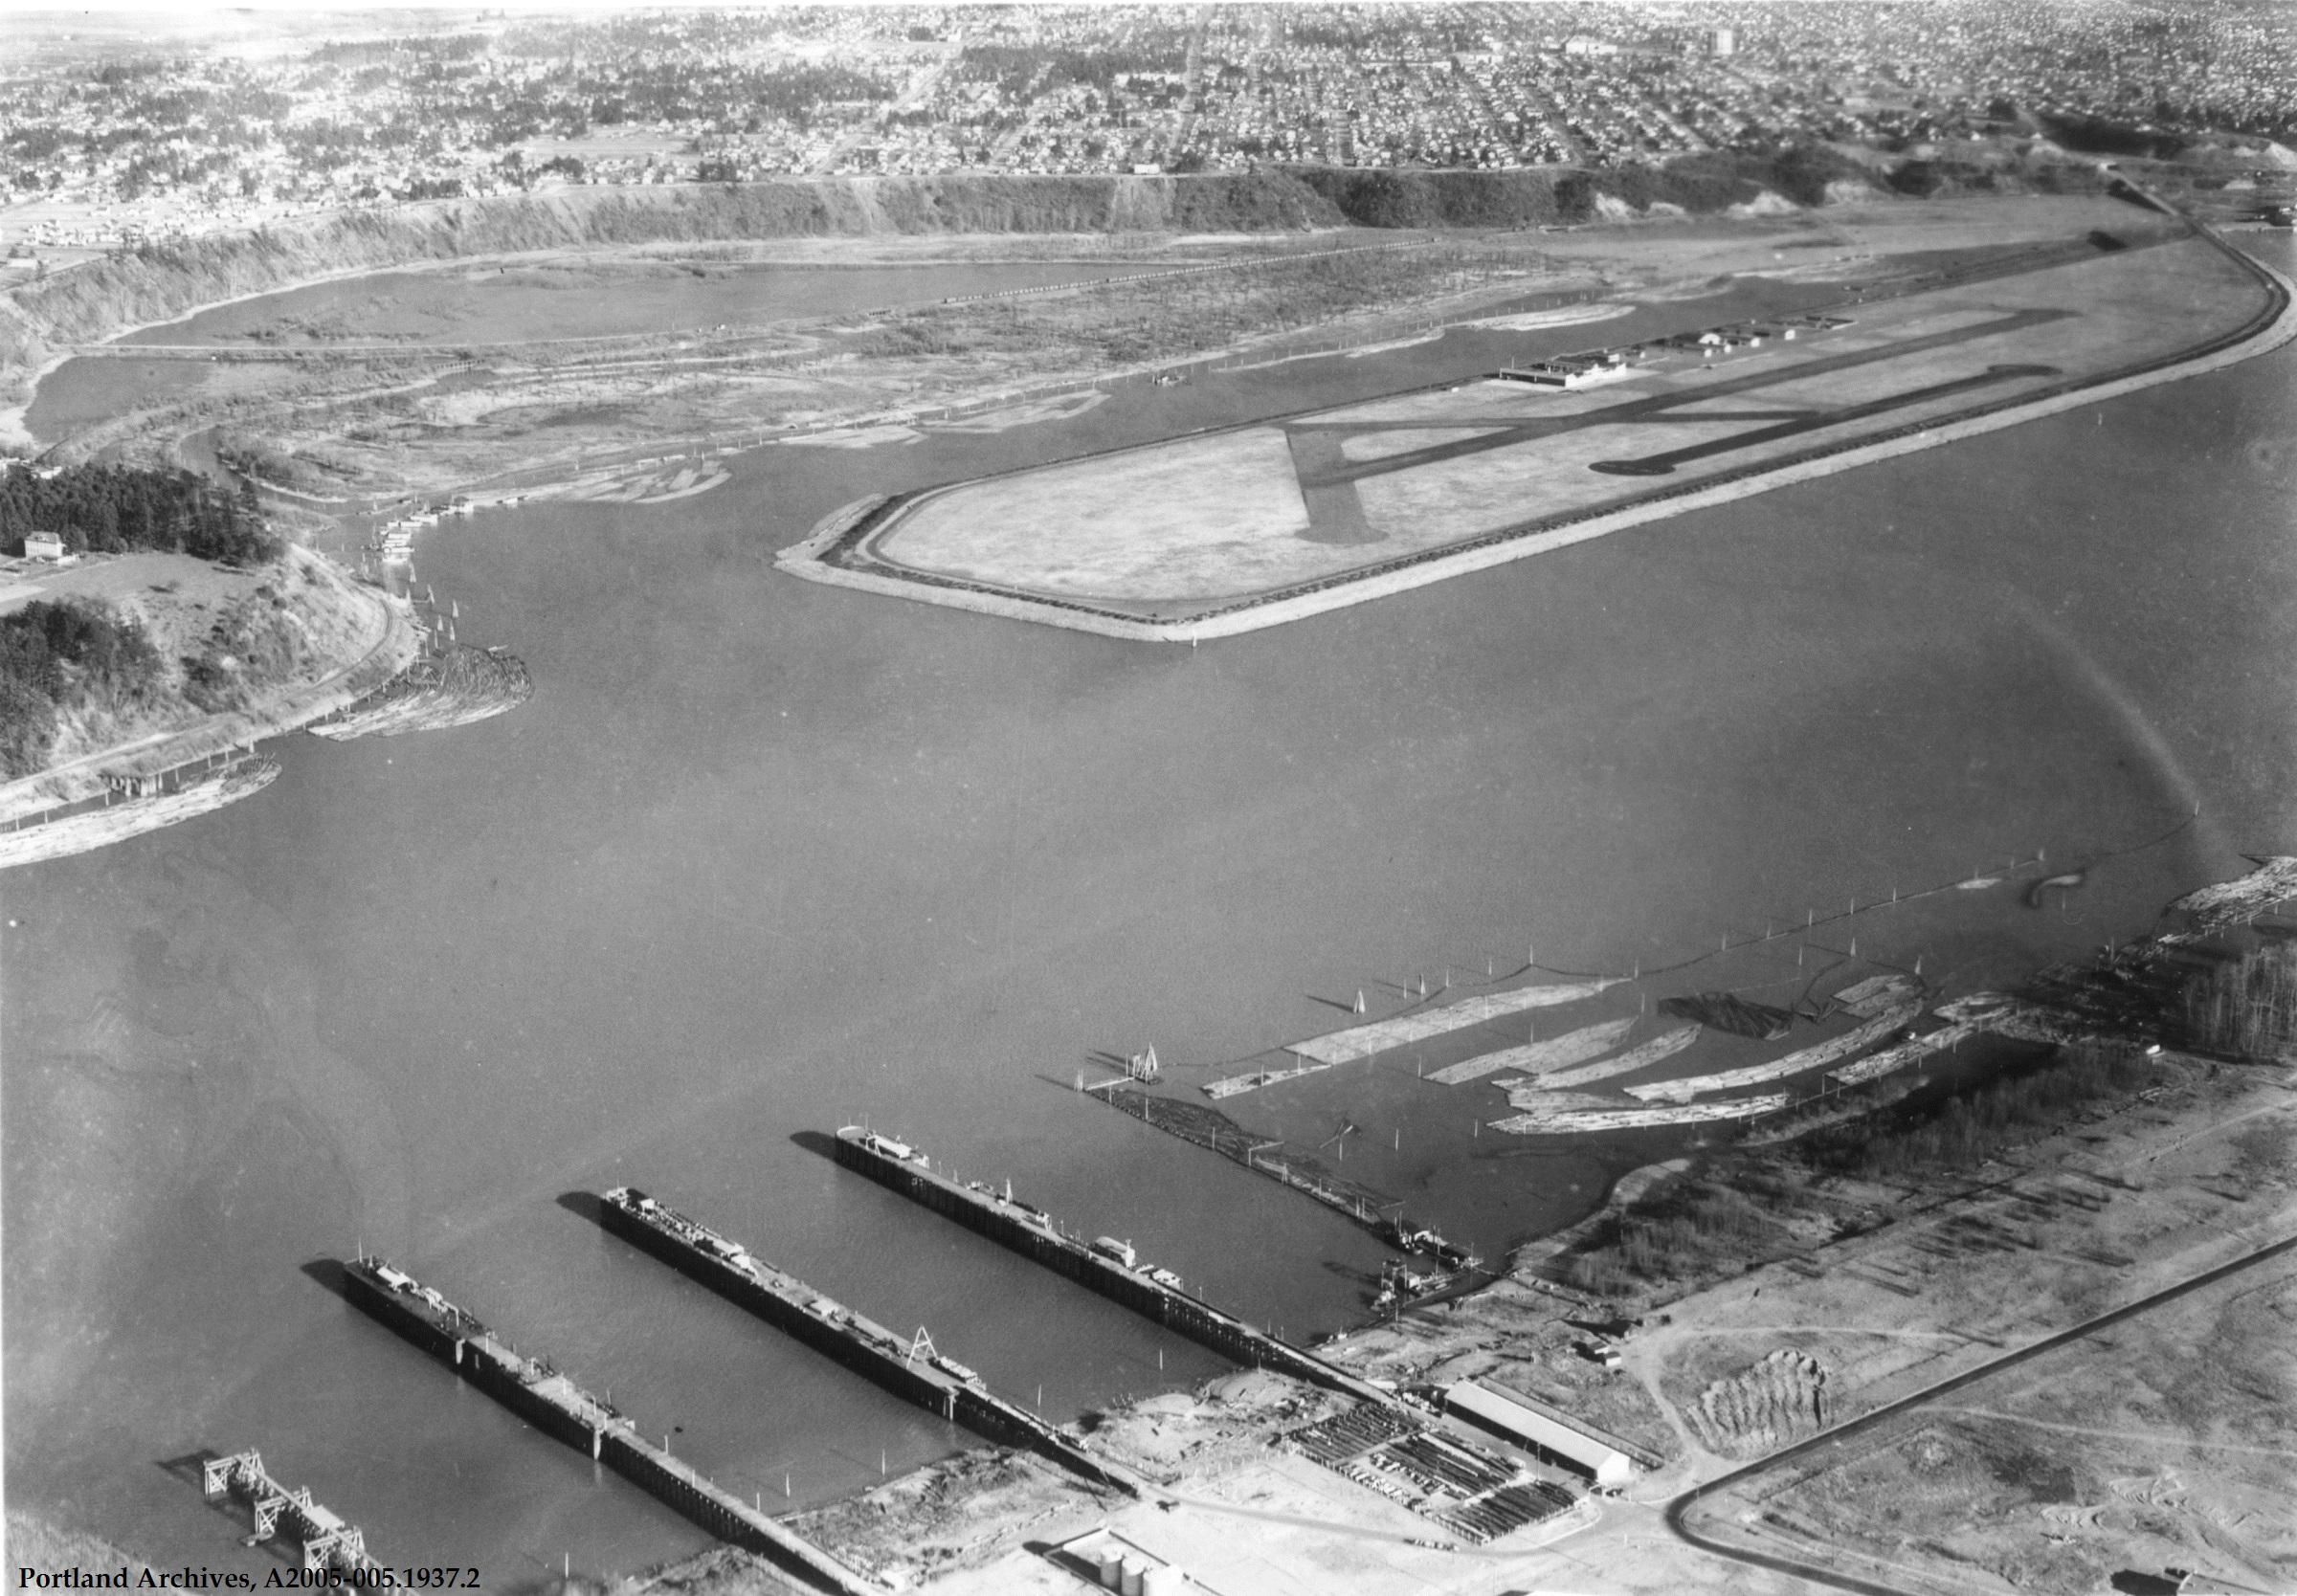 Swan Island was the site of Portland's first airport, Swan Island Municipal Airport, dedicated by Charles Lindbergh in and operating until the early s when the island was converted to naval shipbuilding use for World War II as one of the Kaiser codermadys.ml: Portland.